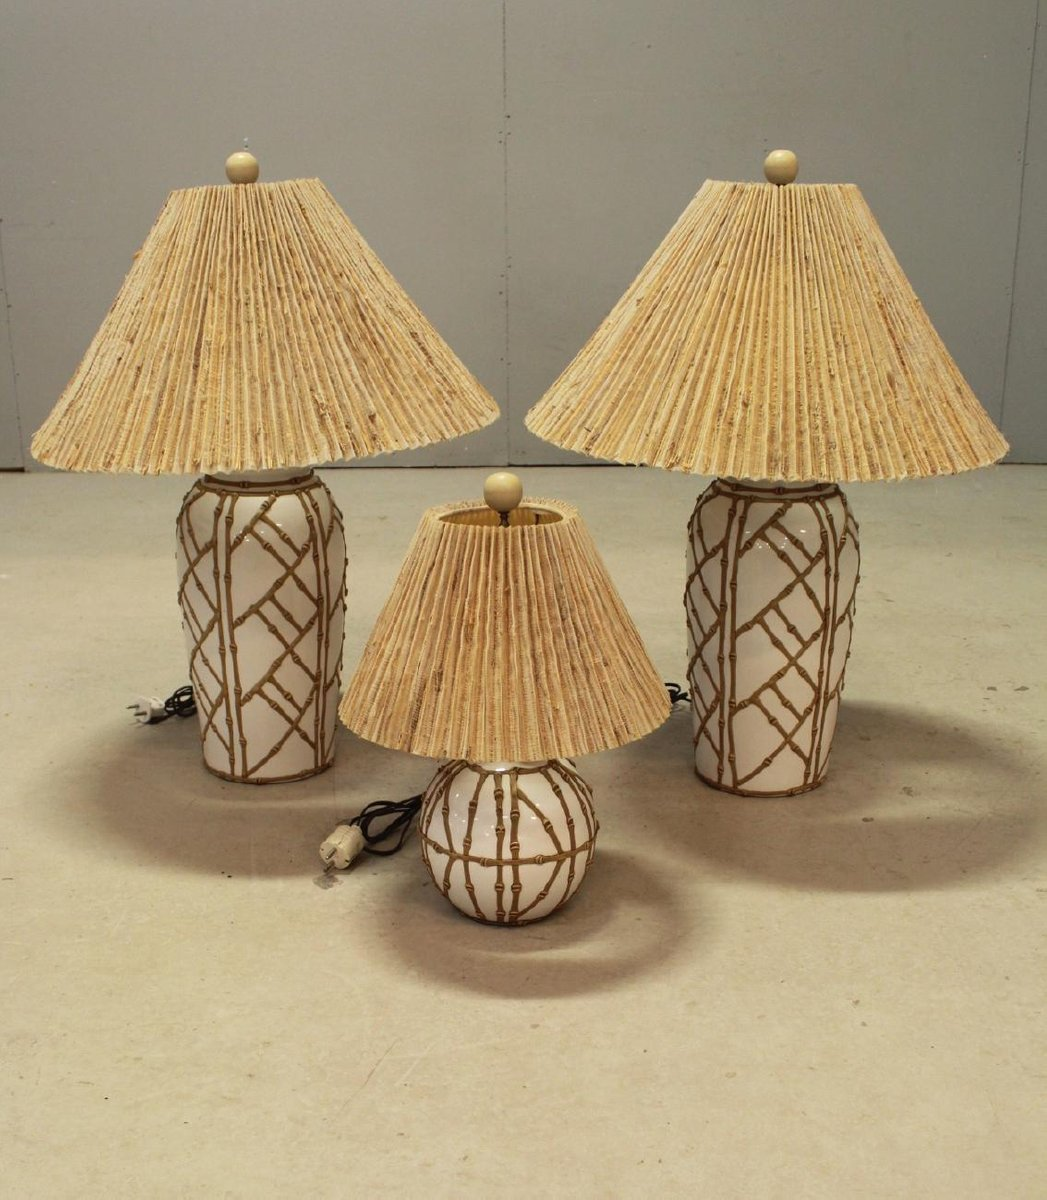 Vintage hollywood regency chinoiserie faux bamboo table lamps set vintage hollywood regency chinoiserie faux bamboo table lamps set of 3 aloadofball Images